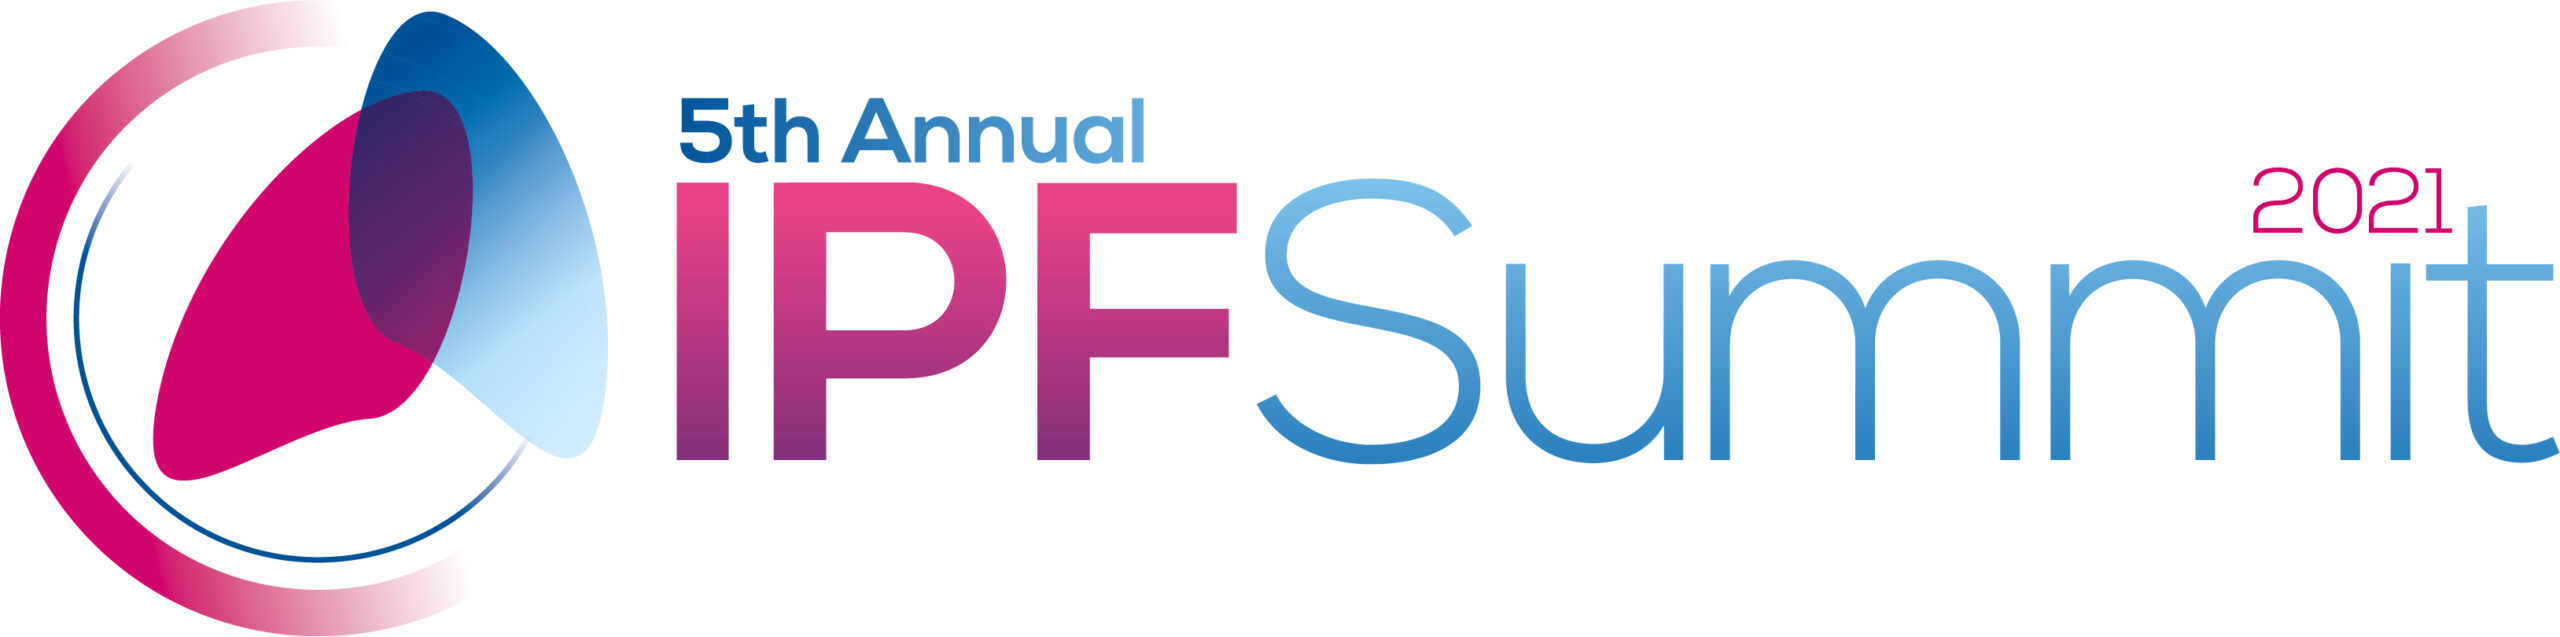 HW210107 5th IPF Summit 2021 logo